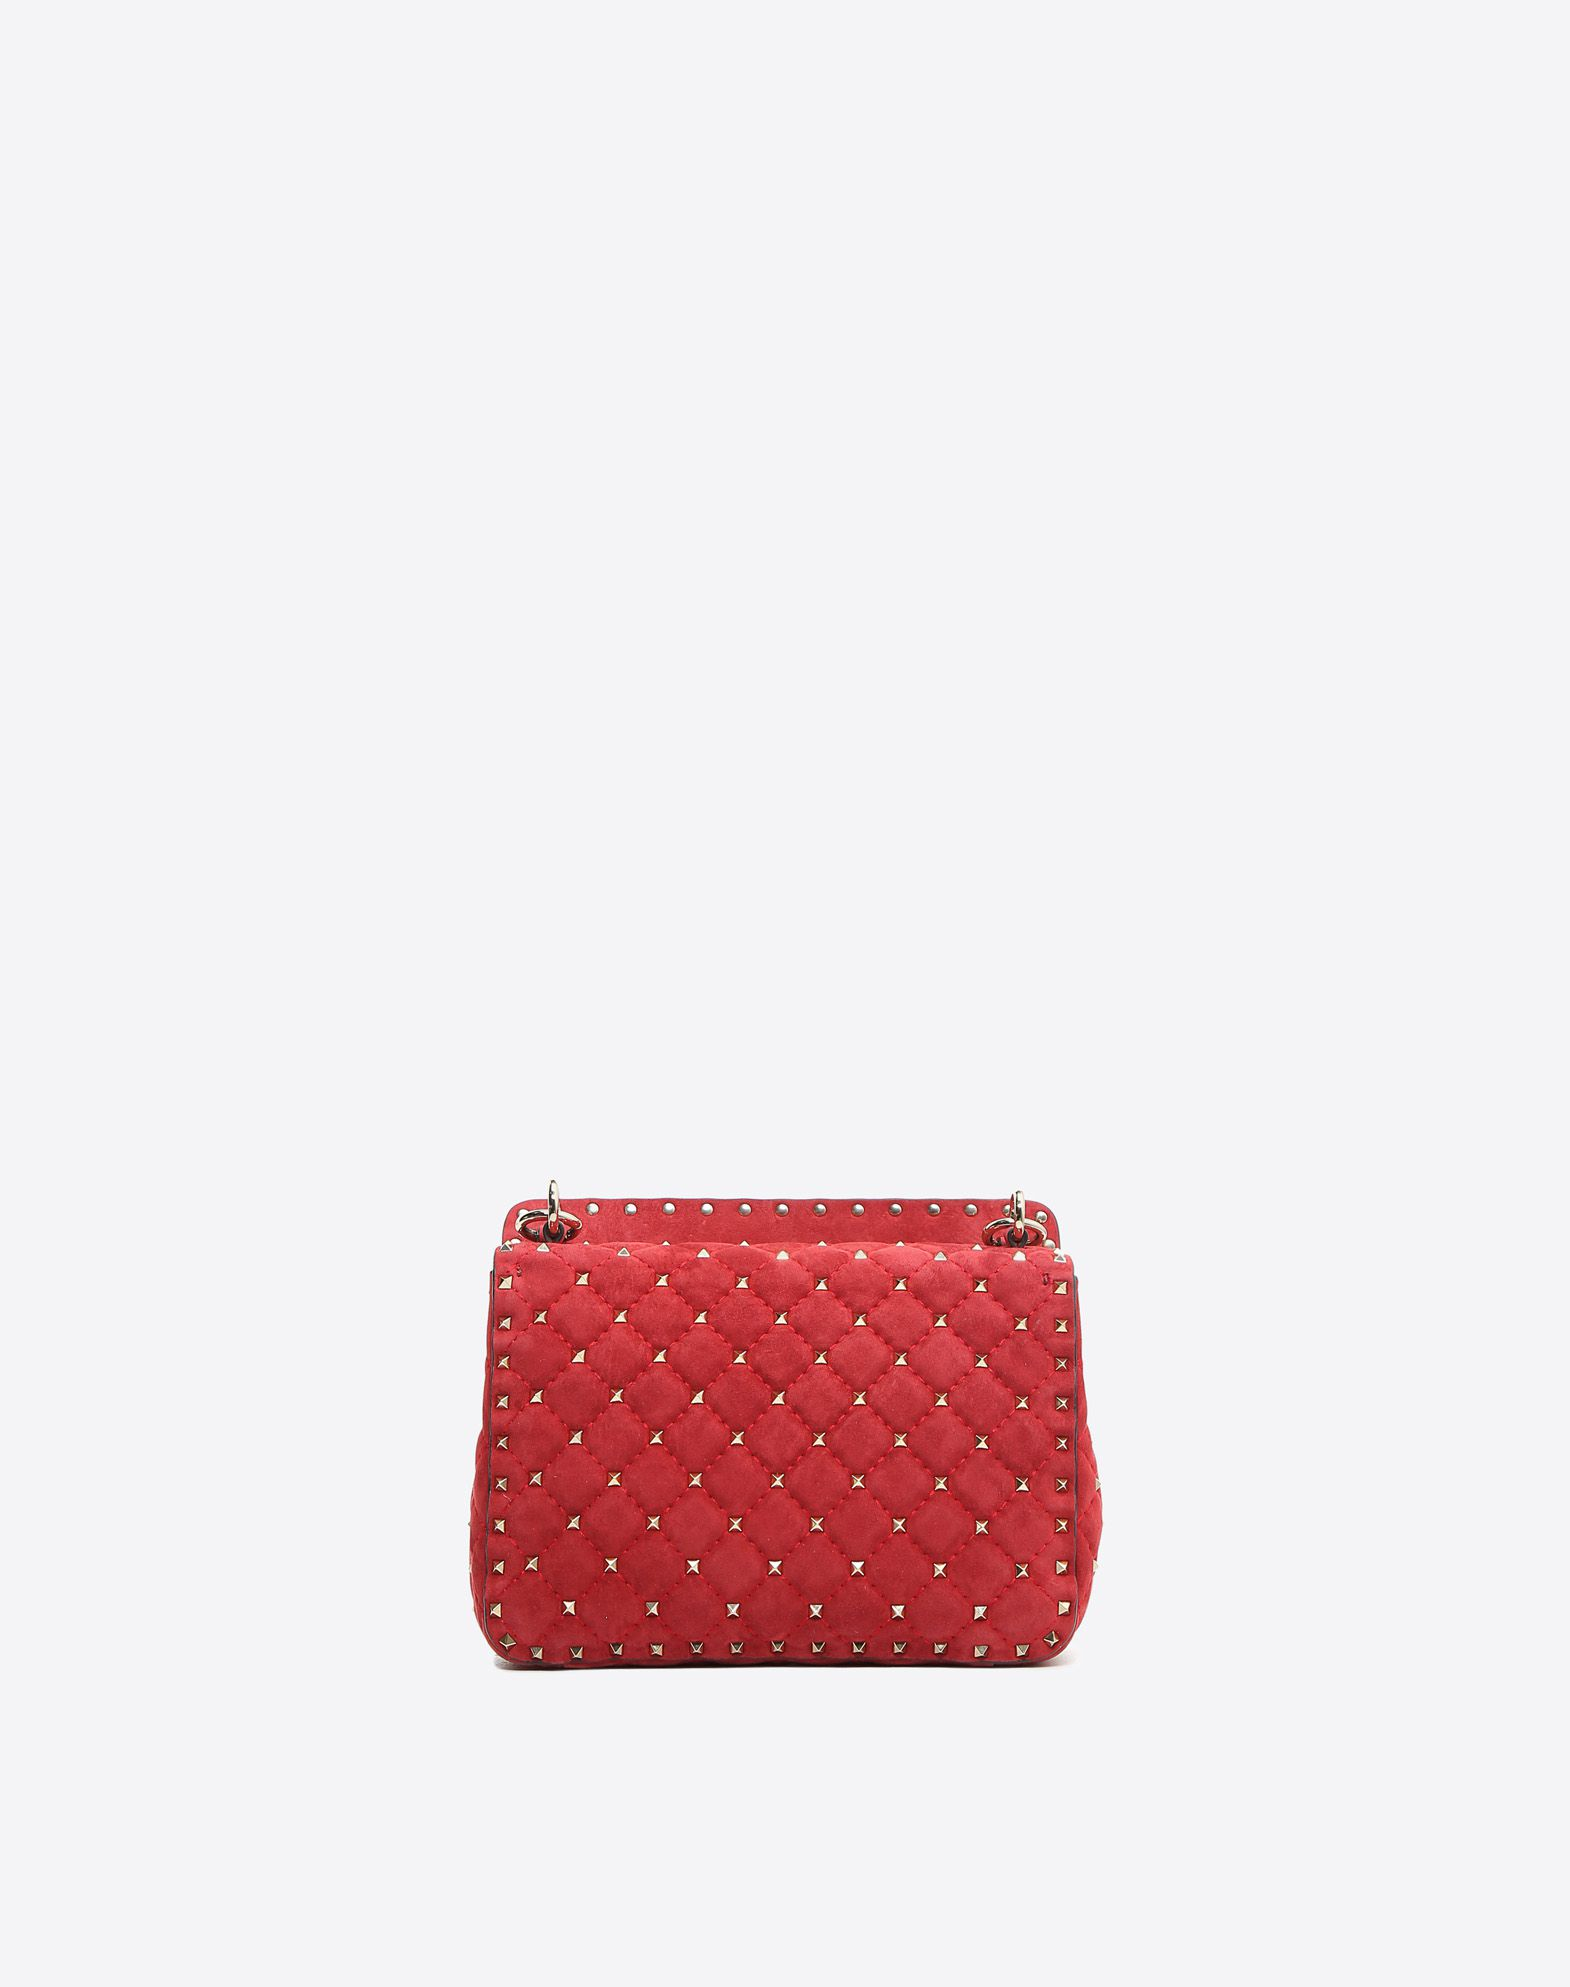 Valentino Garavani The Rockstud Spike Quilted Leather Wallet - Red Valentino 9jKsAvweBE